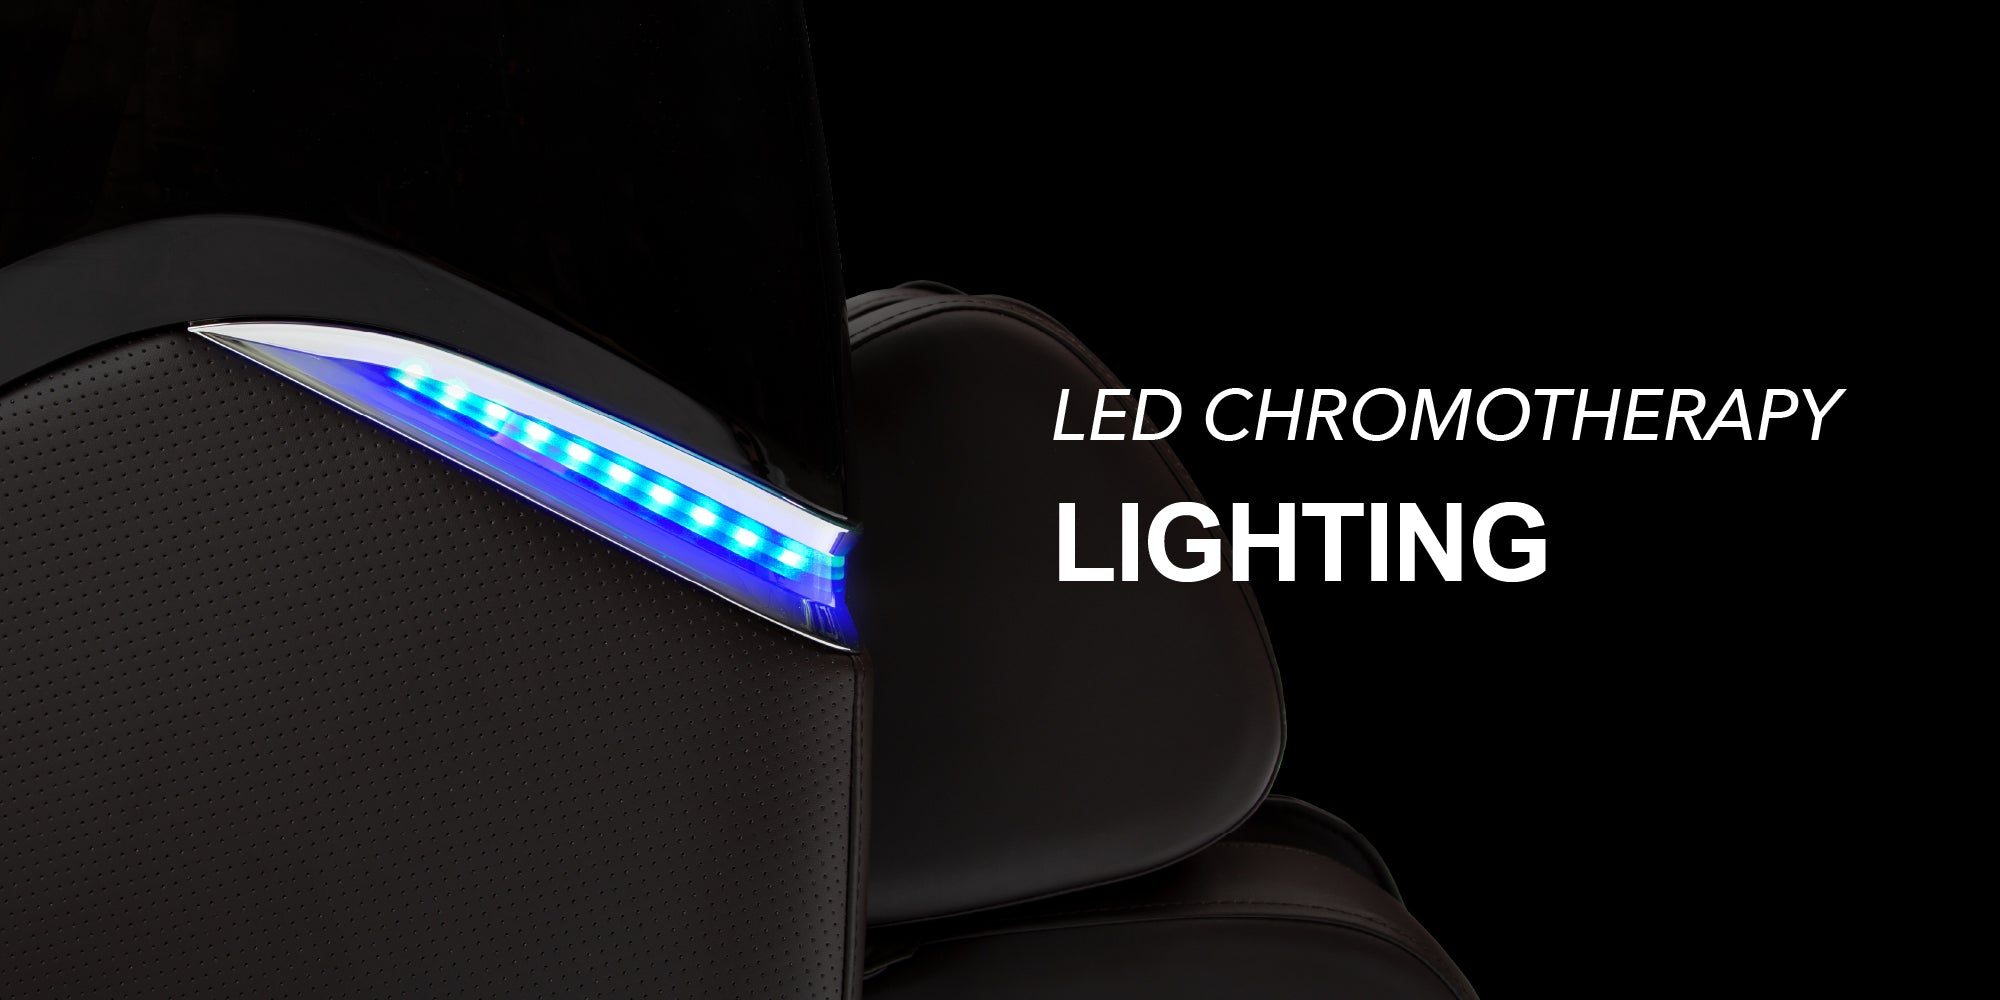 LED Chromotherapy Lighting